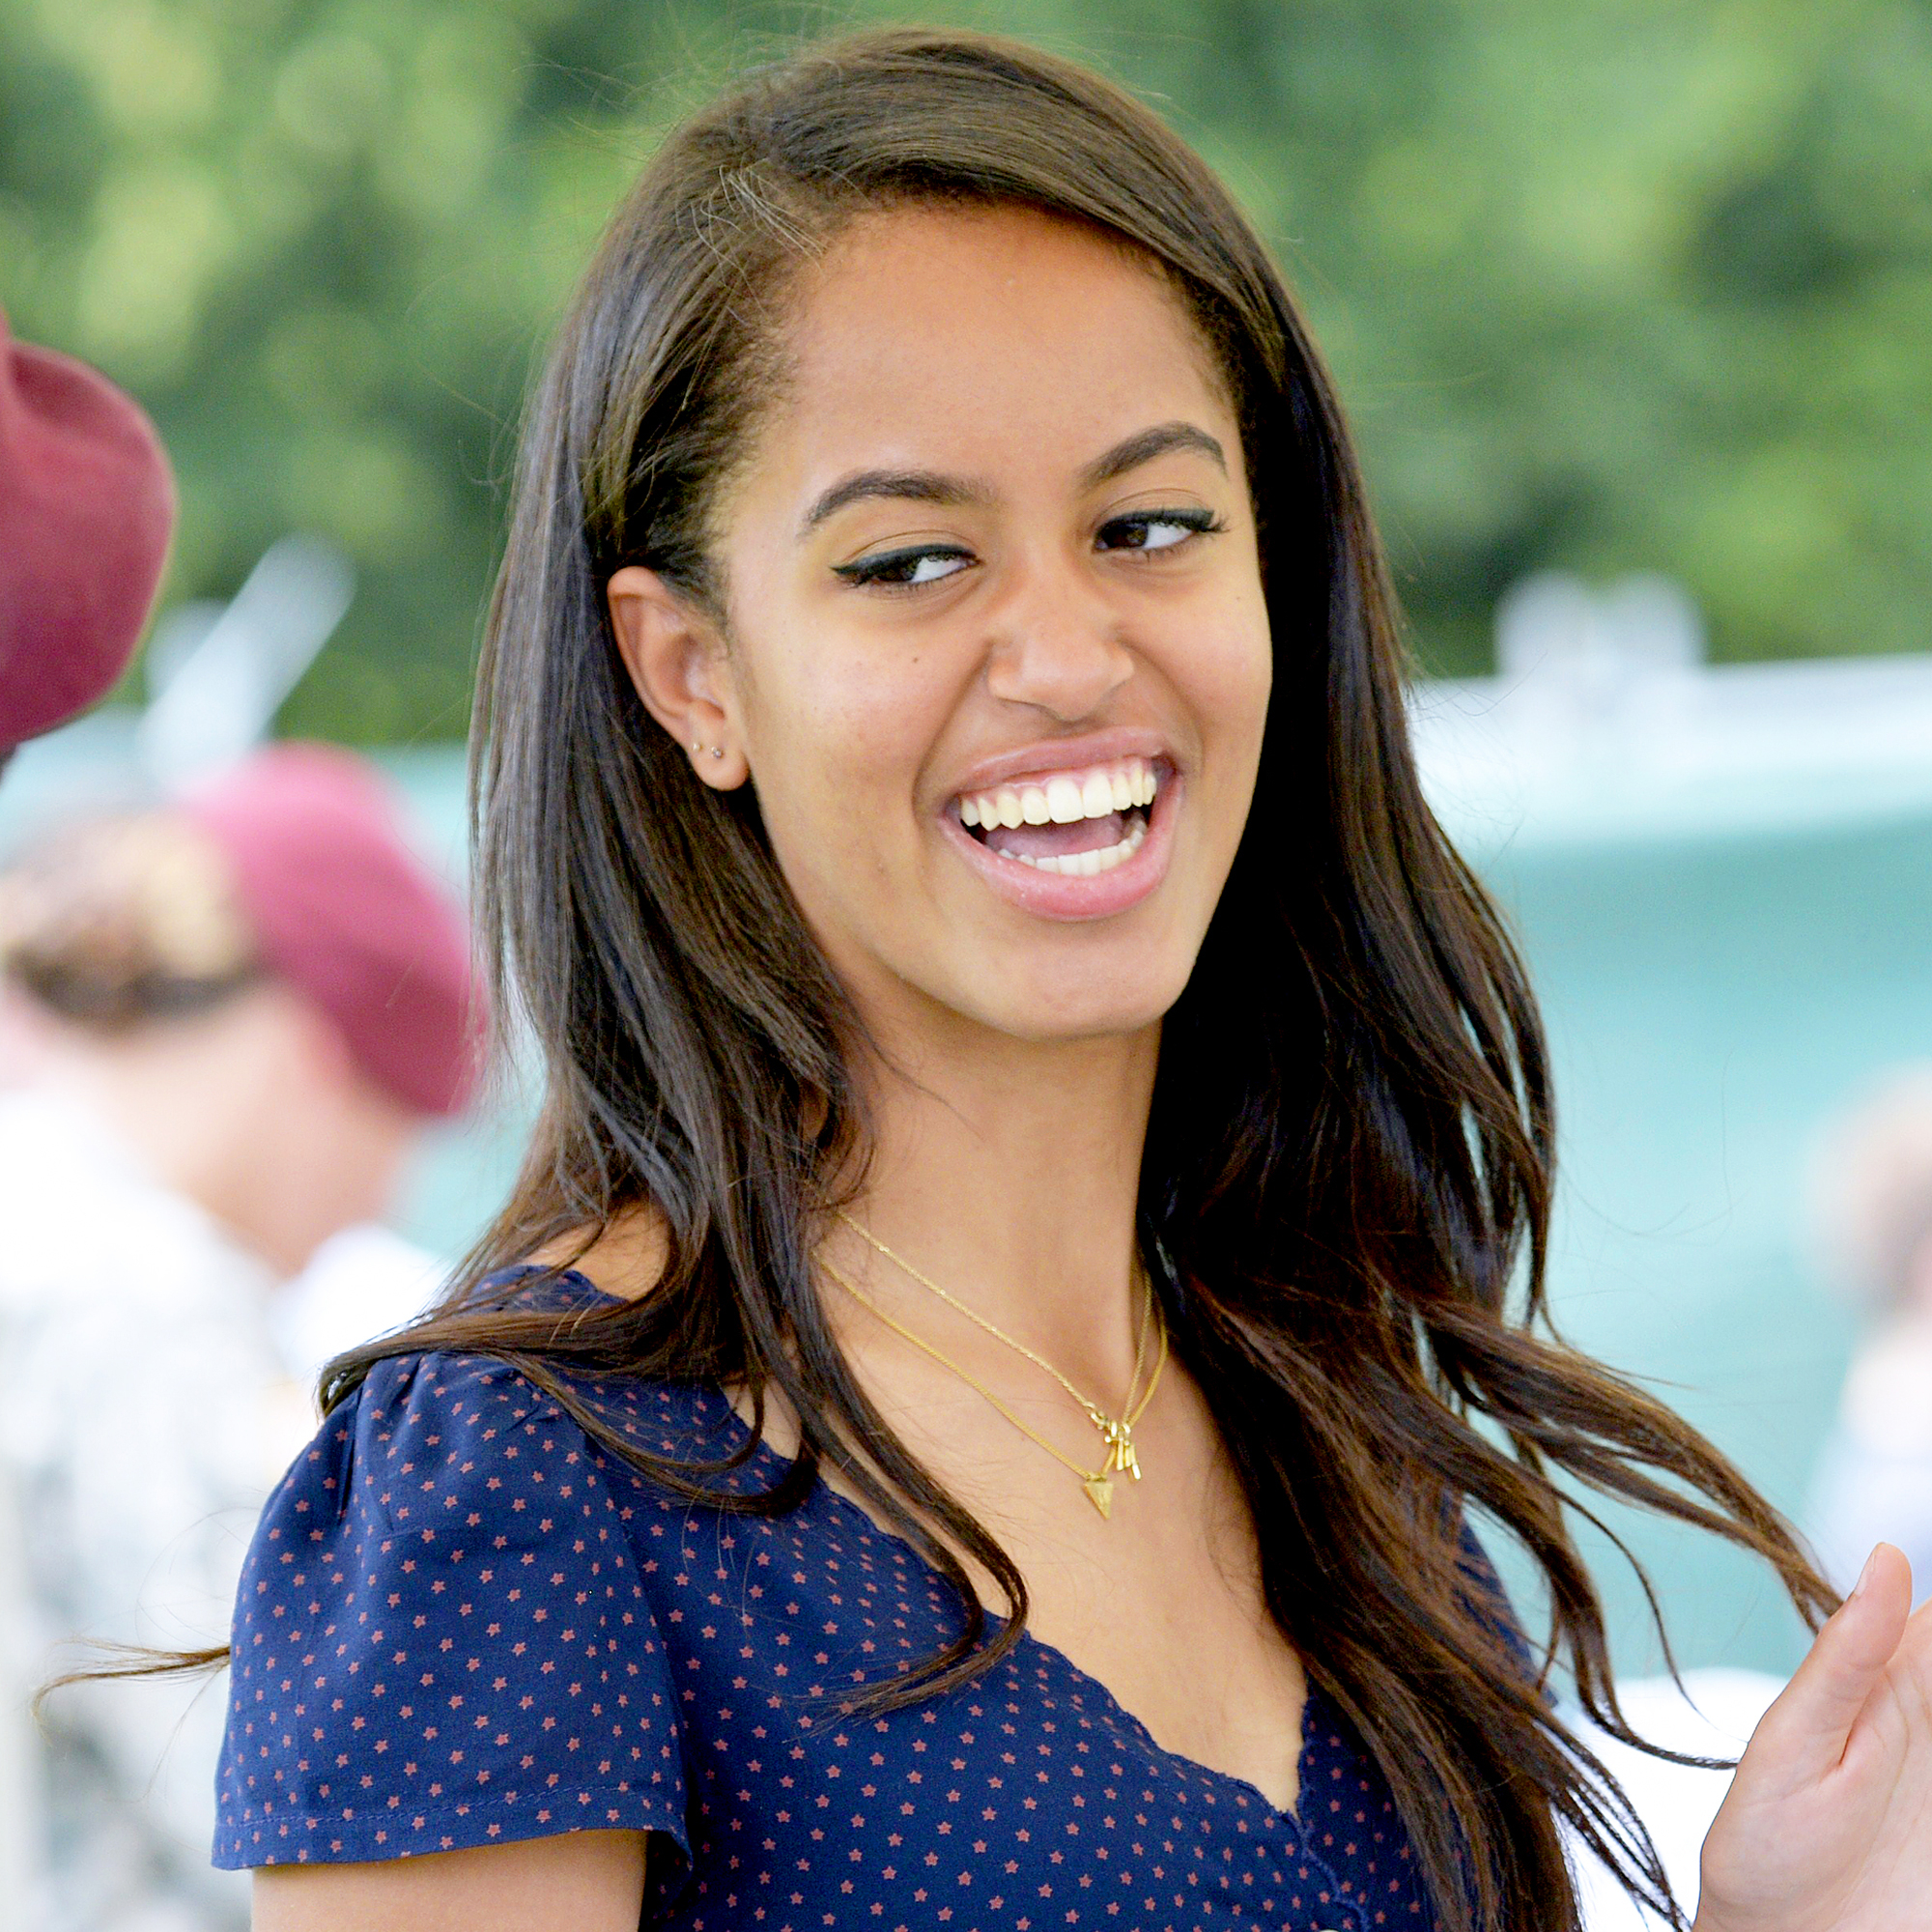 Fall In Colorado Wallpaper Malia Obama Took A Secret Trip To Bolivia And Peru